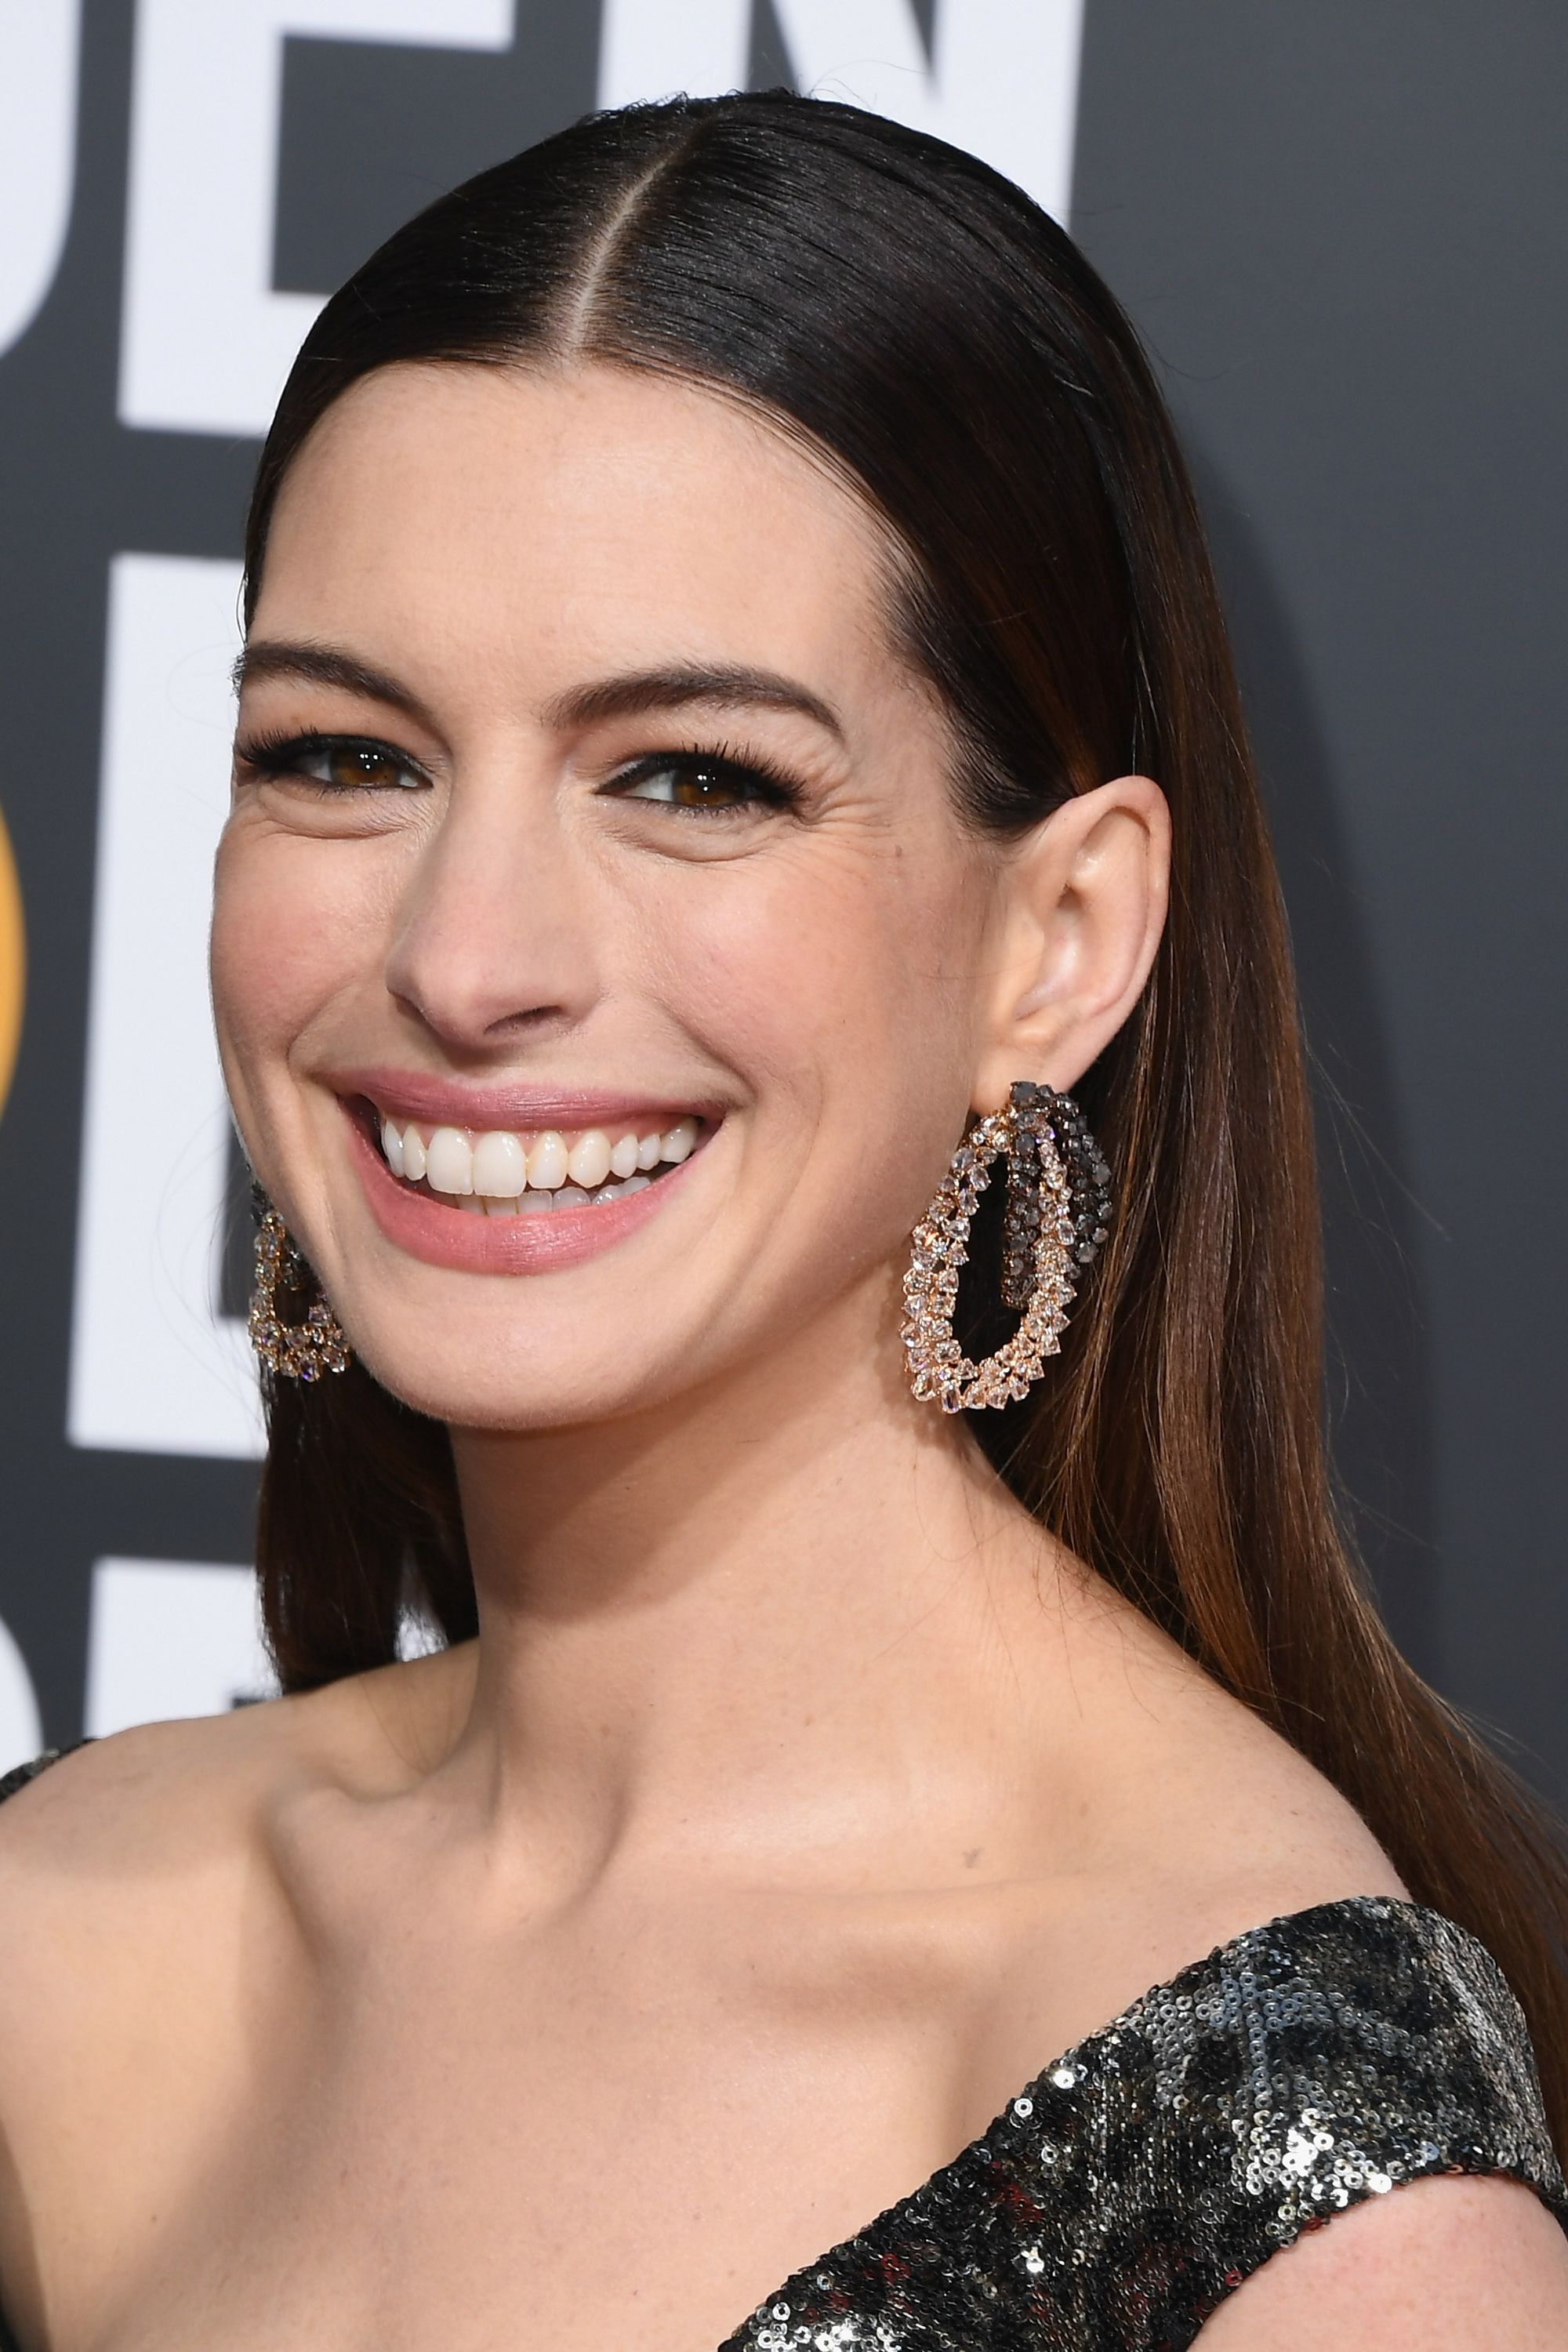 Anne Hathaway Hairstyle - 76th Annual Golden Globe Awards - Arrivals